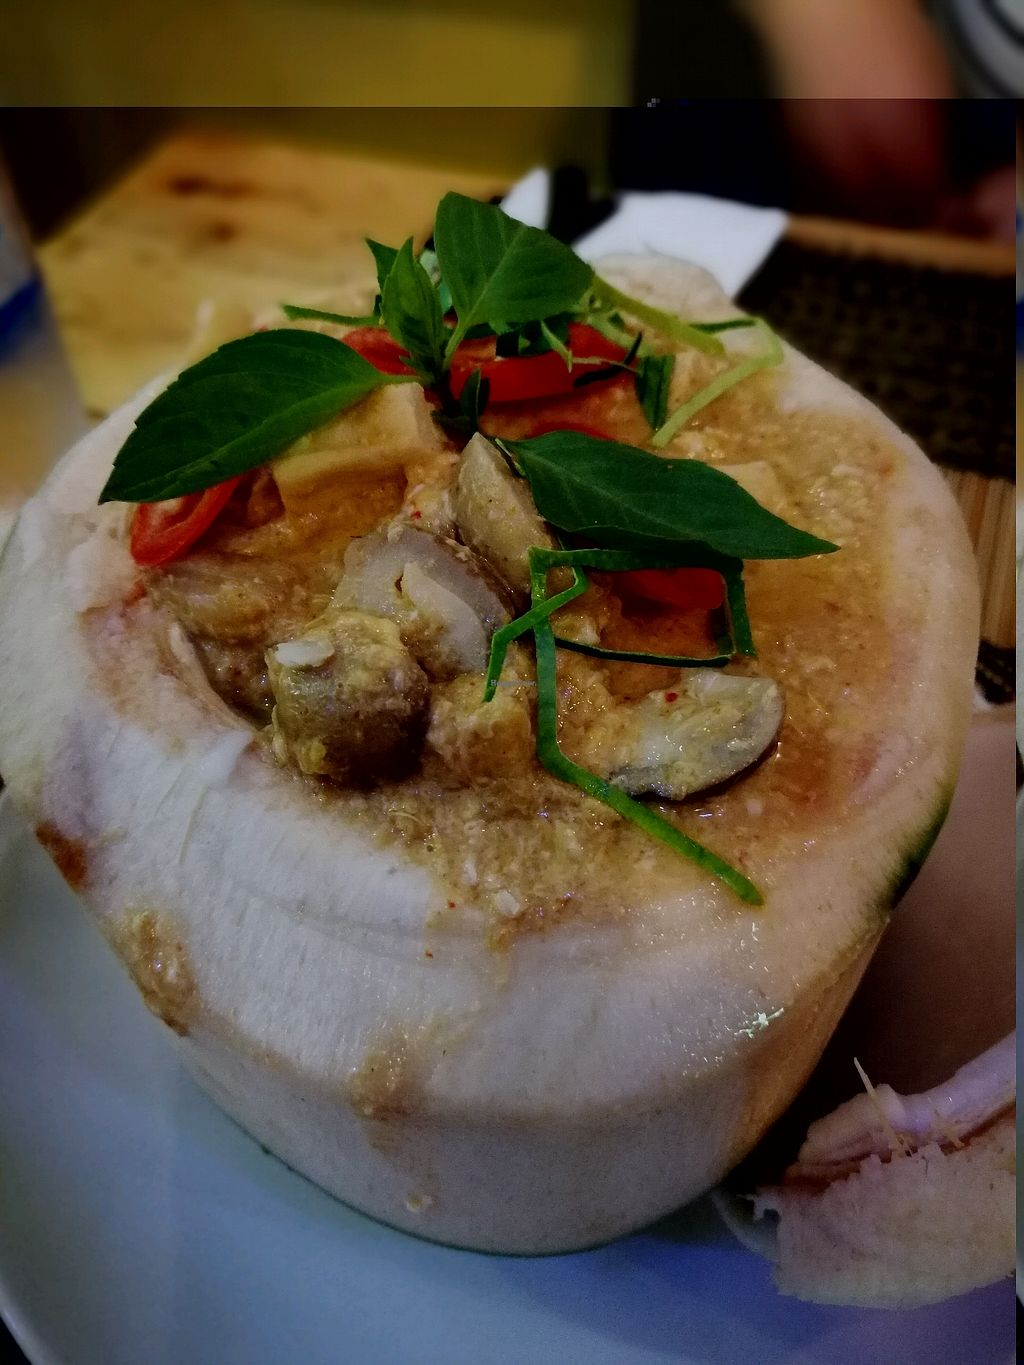 """Photo of Taste from Heaven  by <a href=""""/members/profile/PatrickTunhapong"""">PatrickTunhapong</a> <br/>Steam Tofu Curry in coconut shell <br/> January 2, 2018  - <a href='/contact/abuse/image/14253/342085'>Report</a>"""